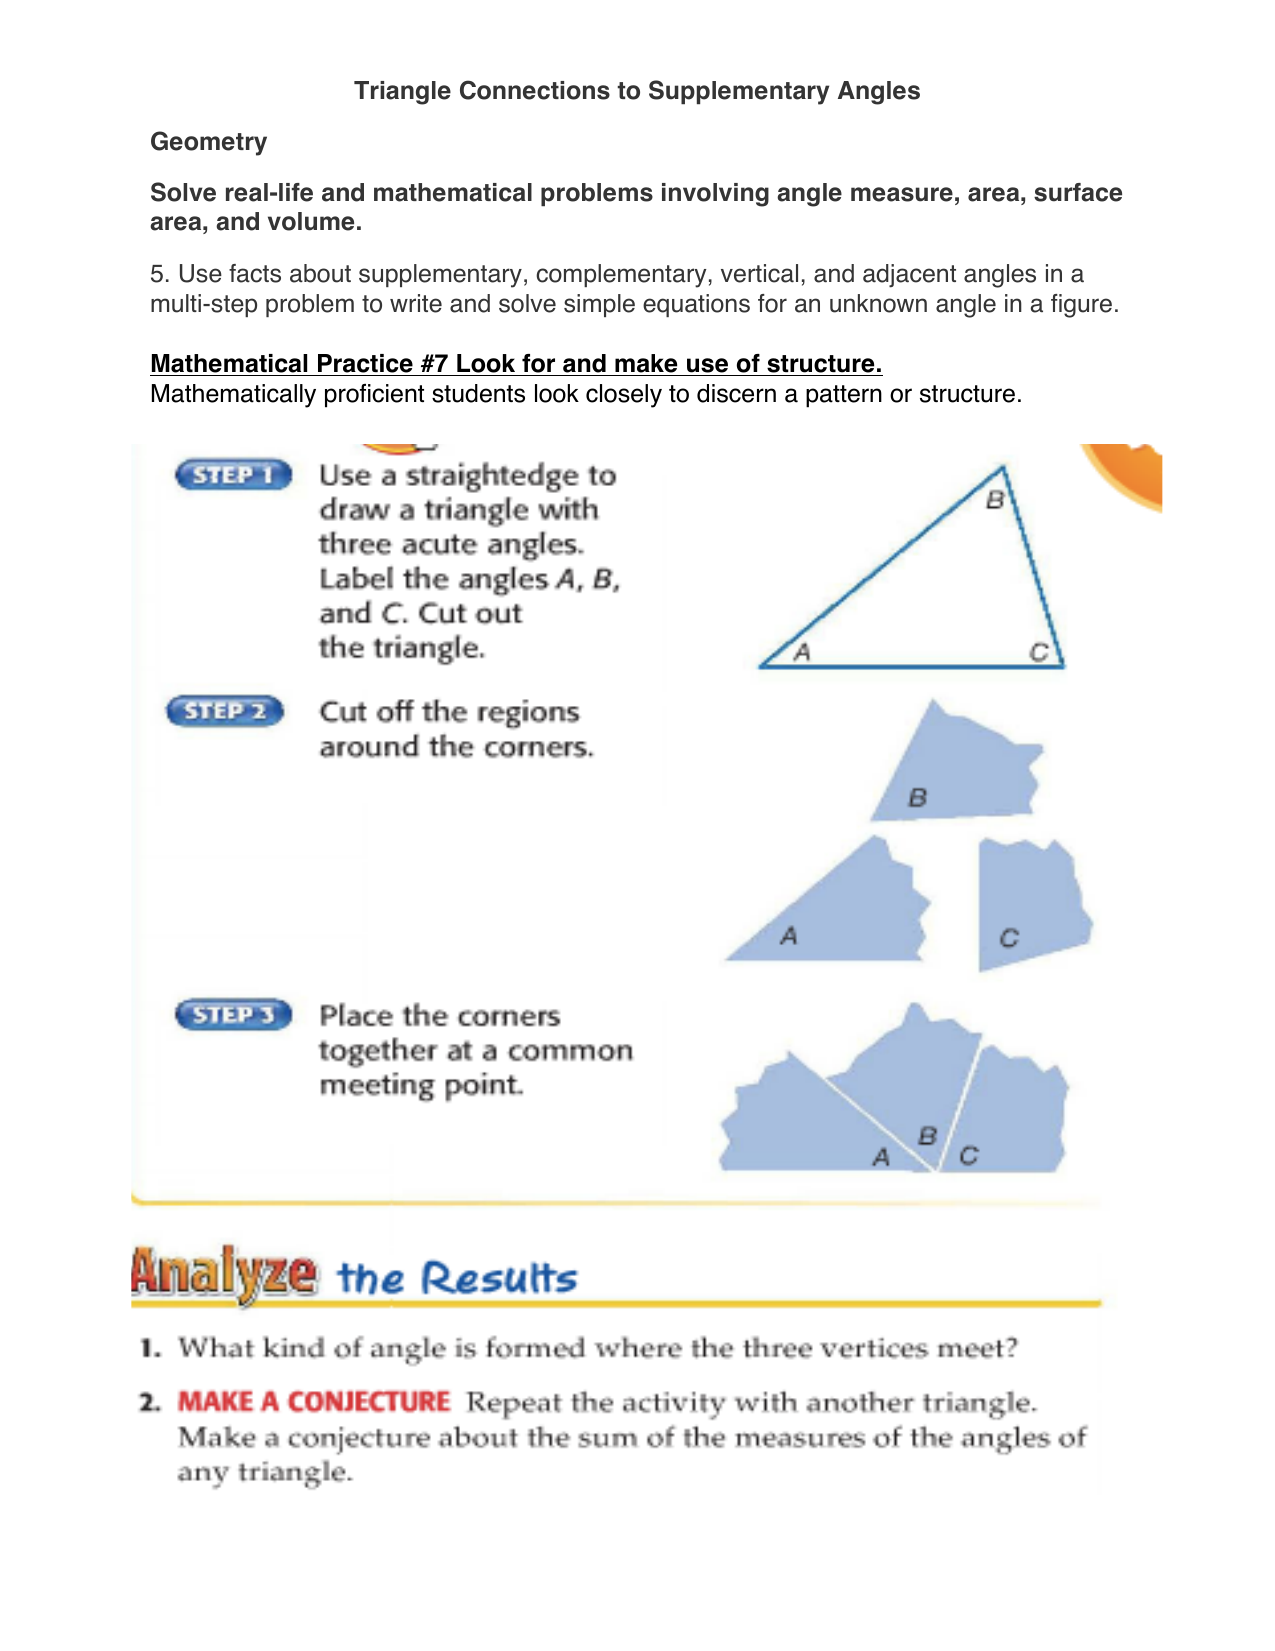 Triangle Connections To Supplementary Angles Geometry Solve Real